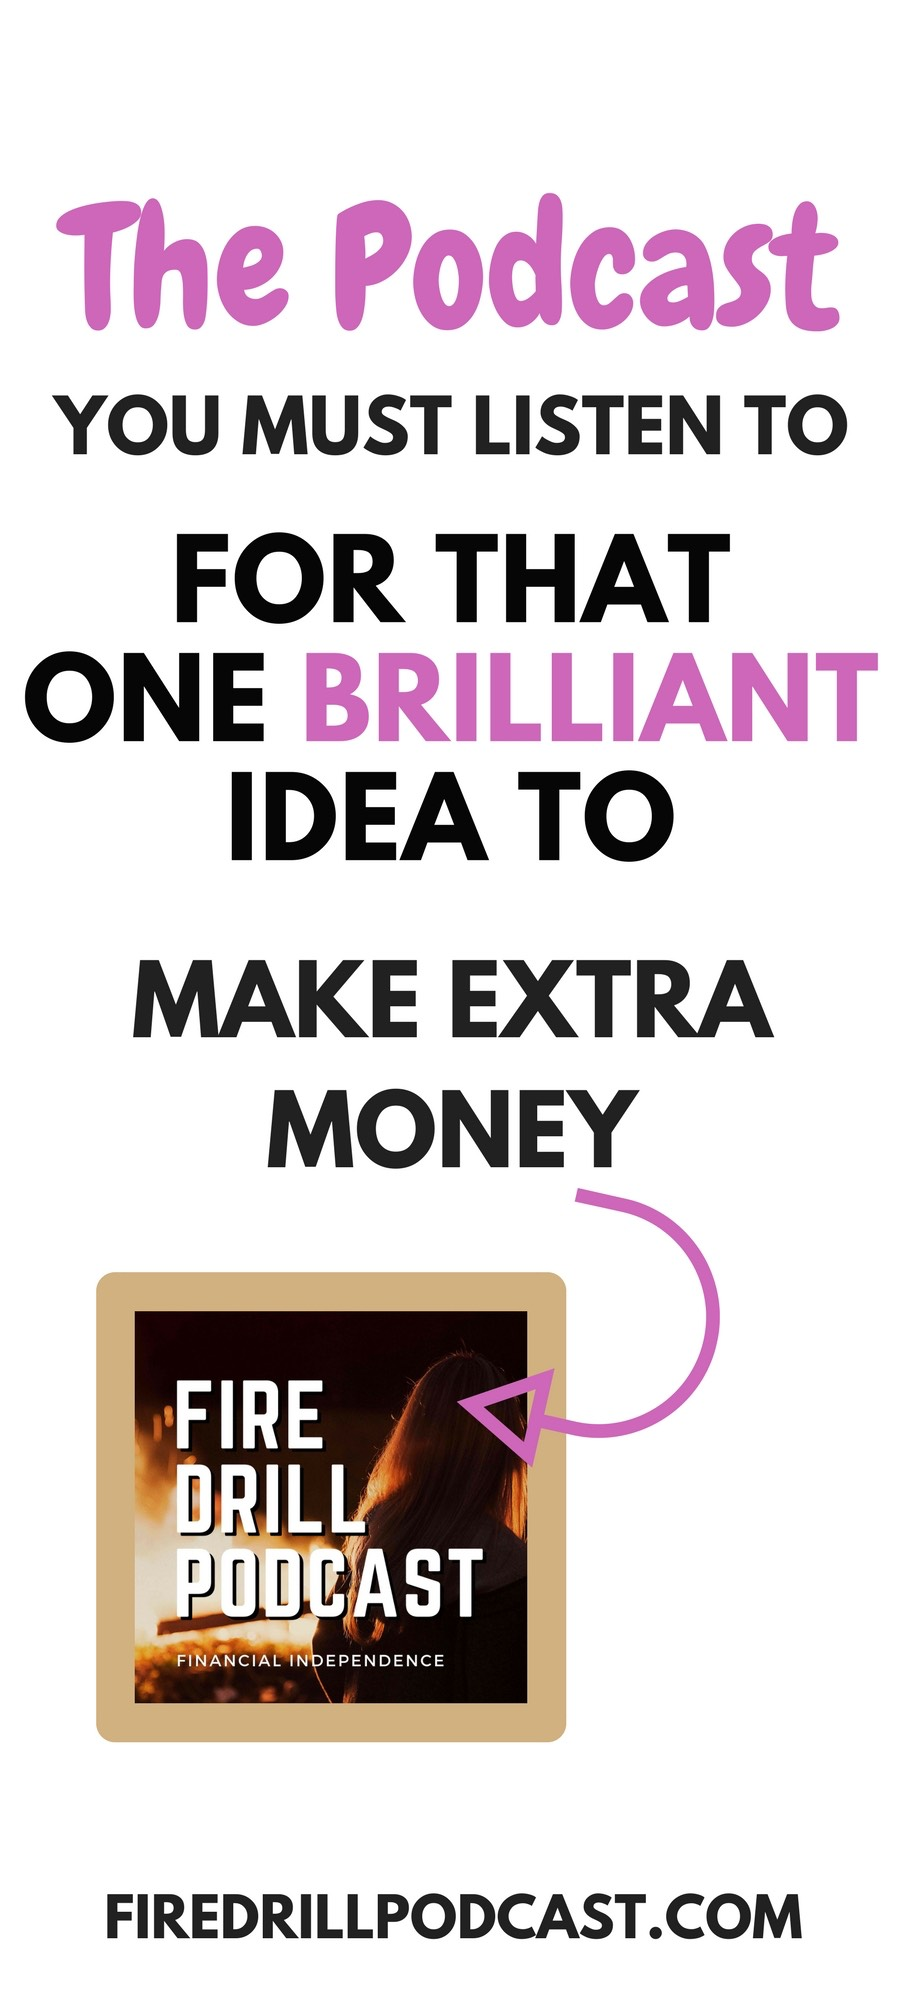 Guys, this podcast gave me an idea to start a romance novel side hustle and now I make $8,000 per month on Kindle. Check it out I'm telling you! Fire Drill Podcast is legit!